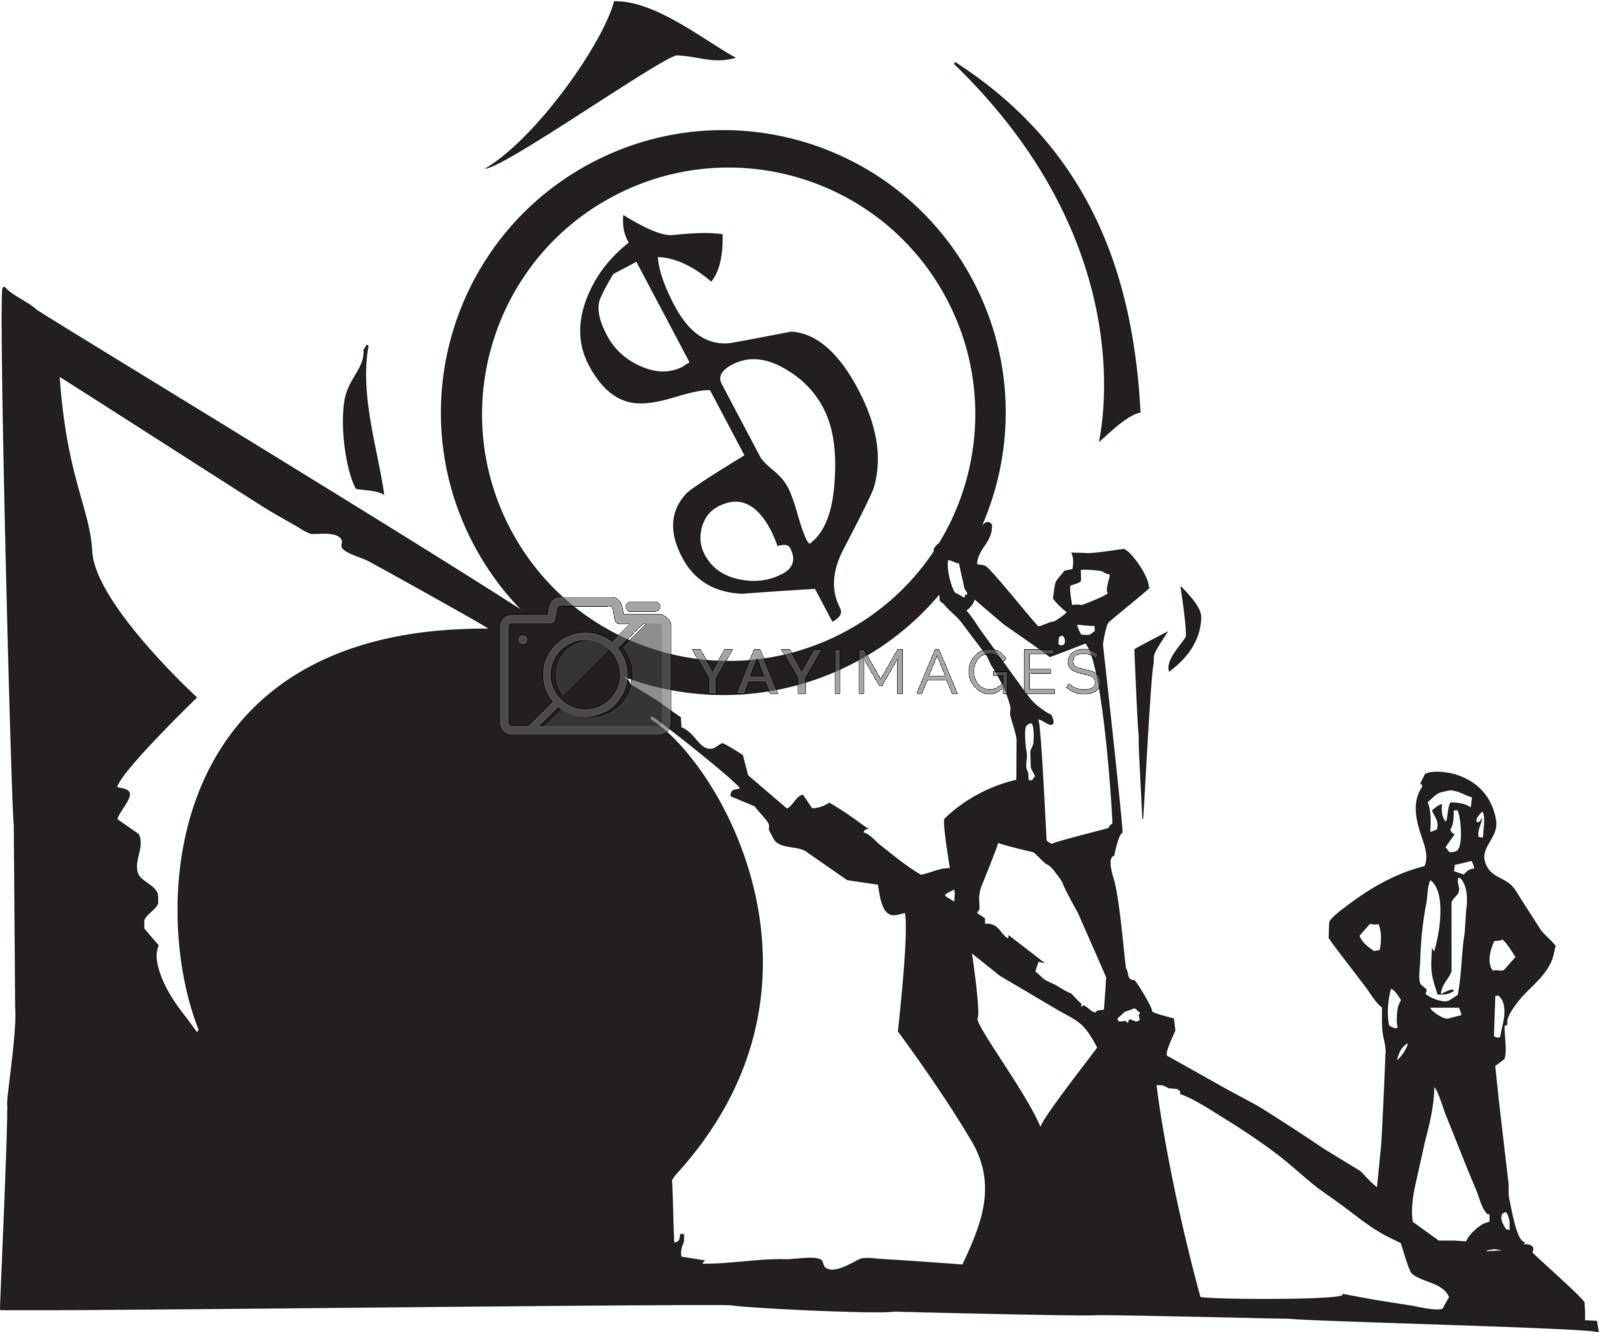 Woodcut style image of a man in business suit rolling a giant coin up a hill.